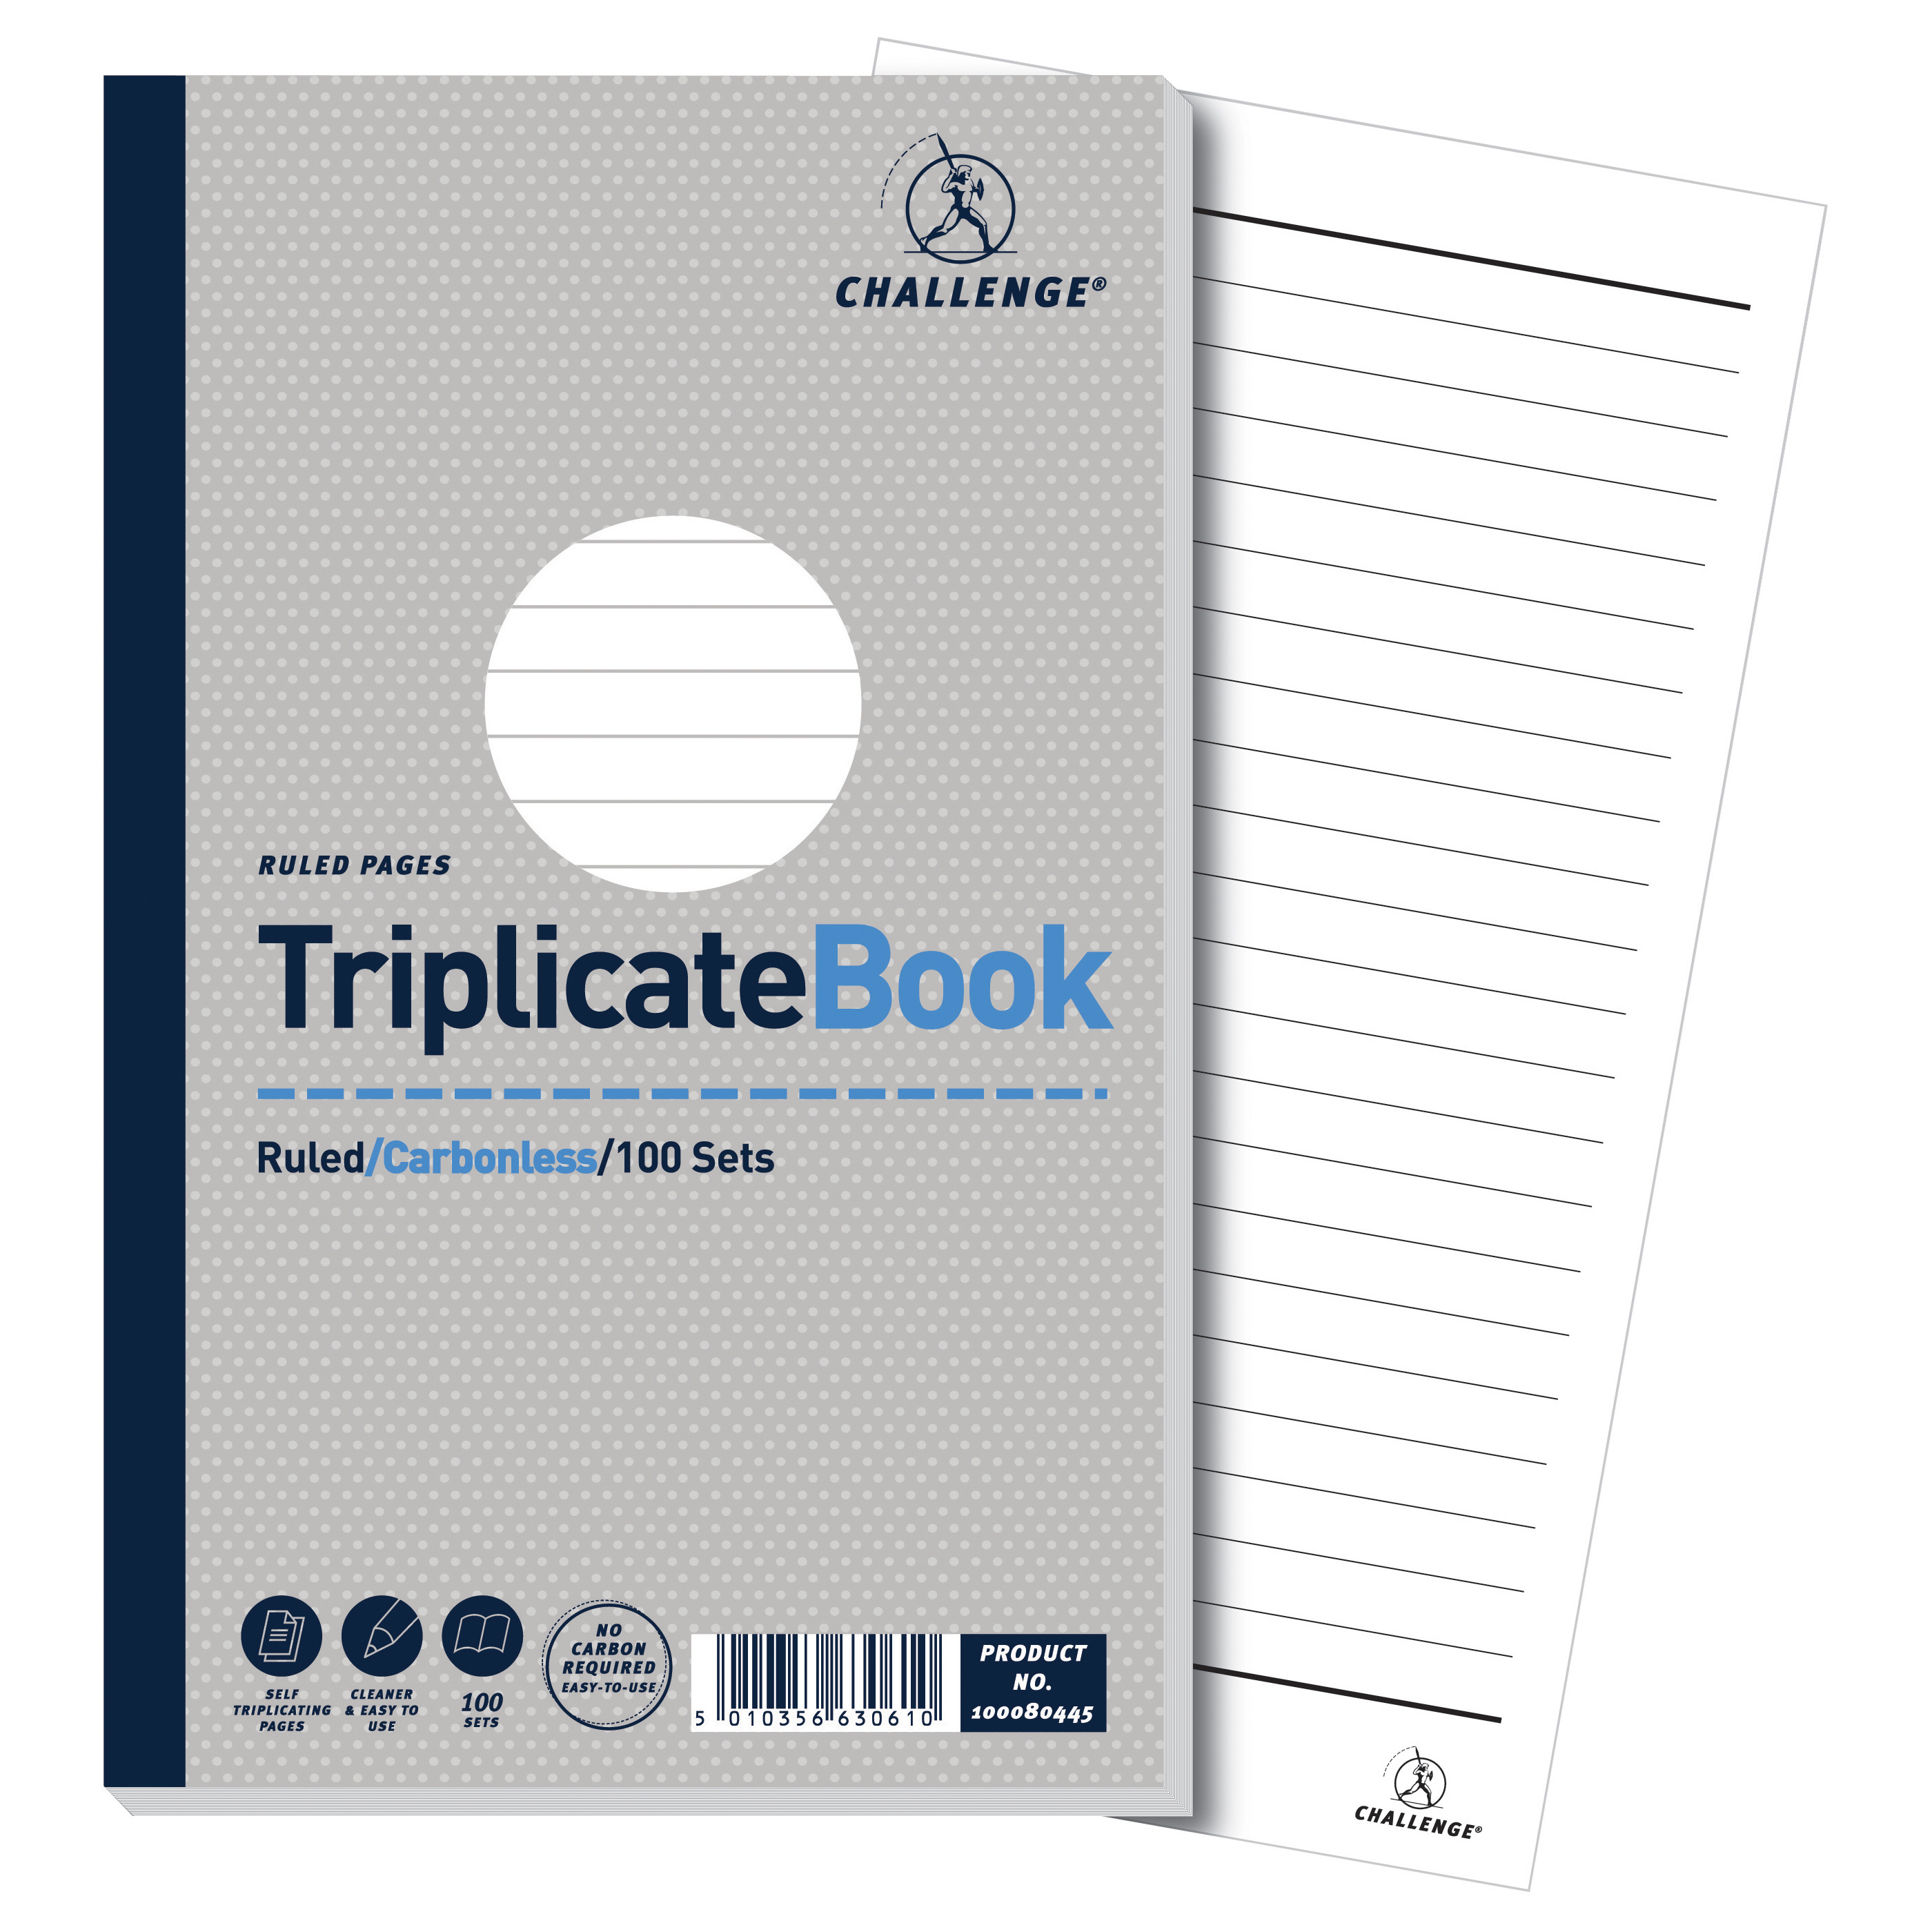 Triplicate Challenge Triplicate Book Carbonless Ruled 100 Sets 210x130mm Ref 100080445 [Pack 5]